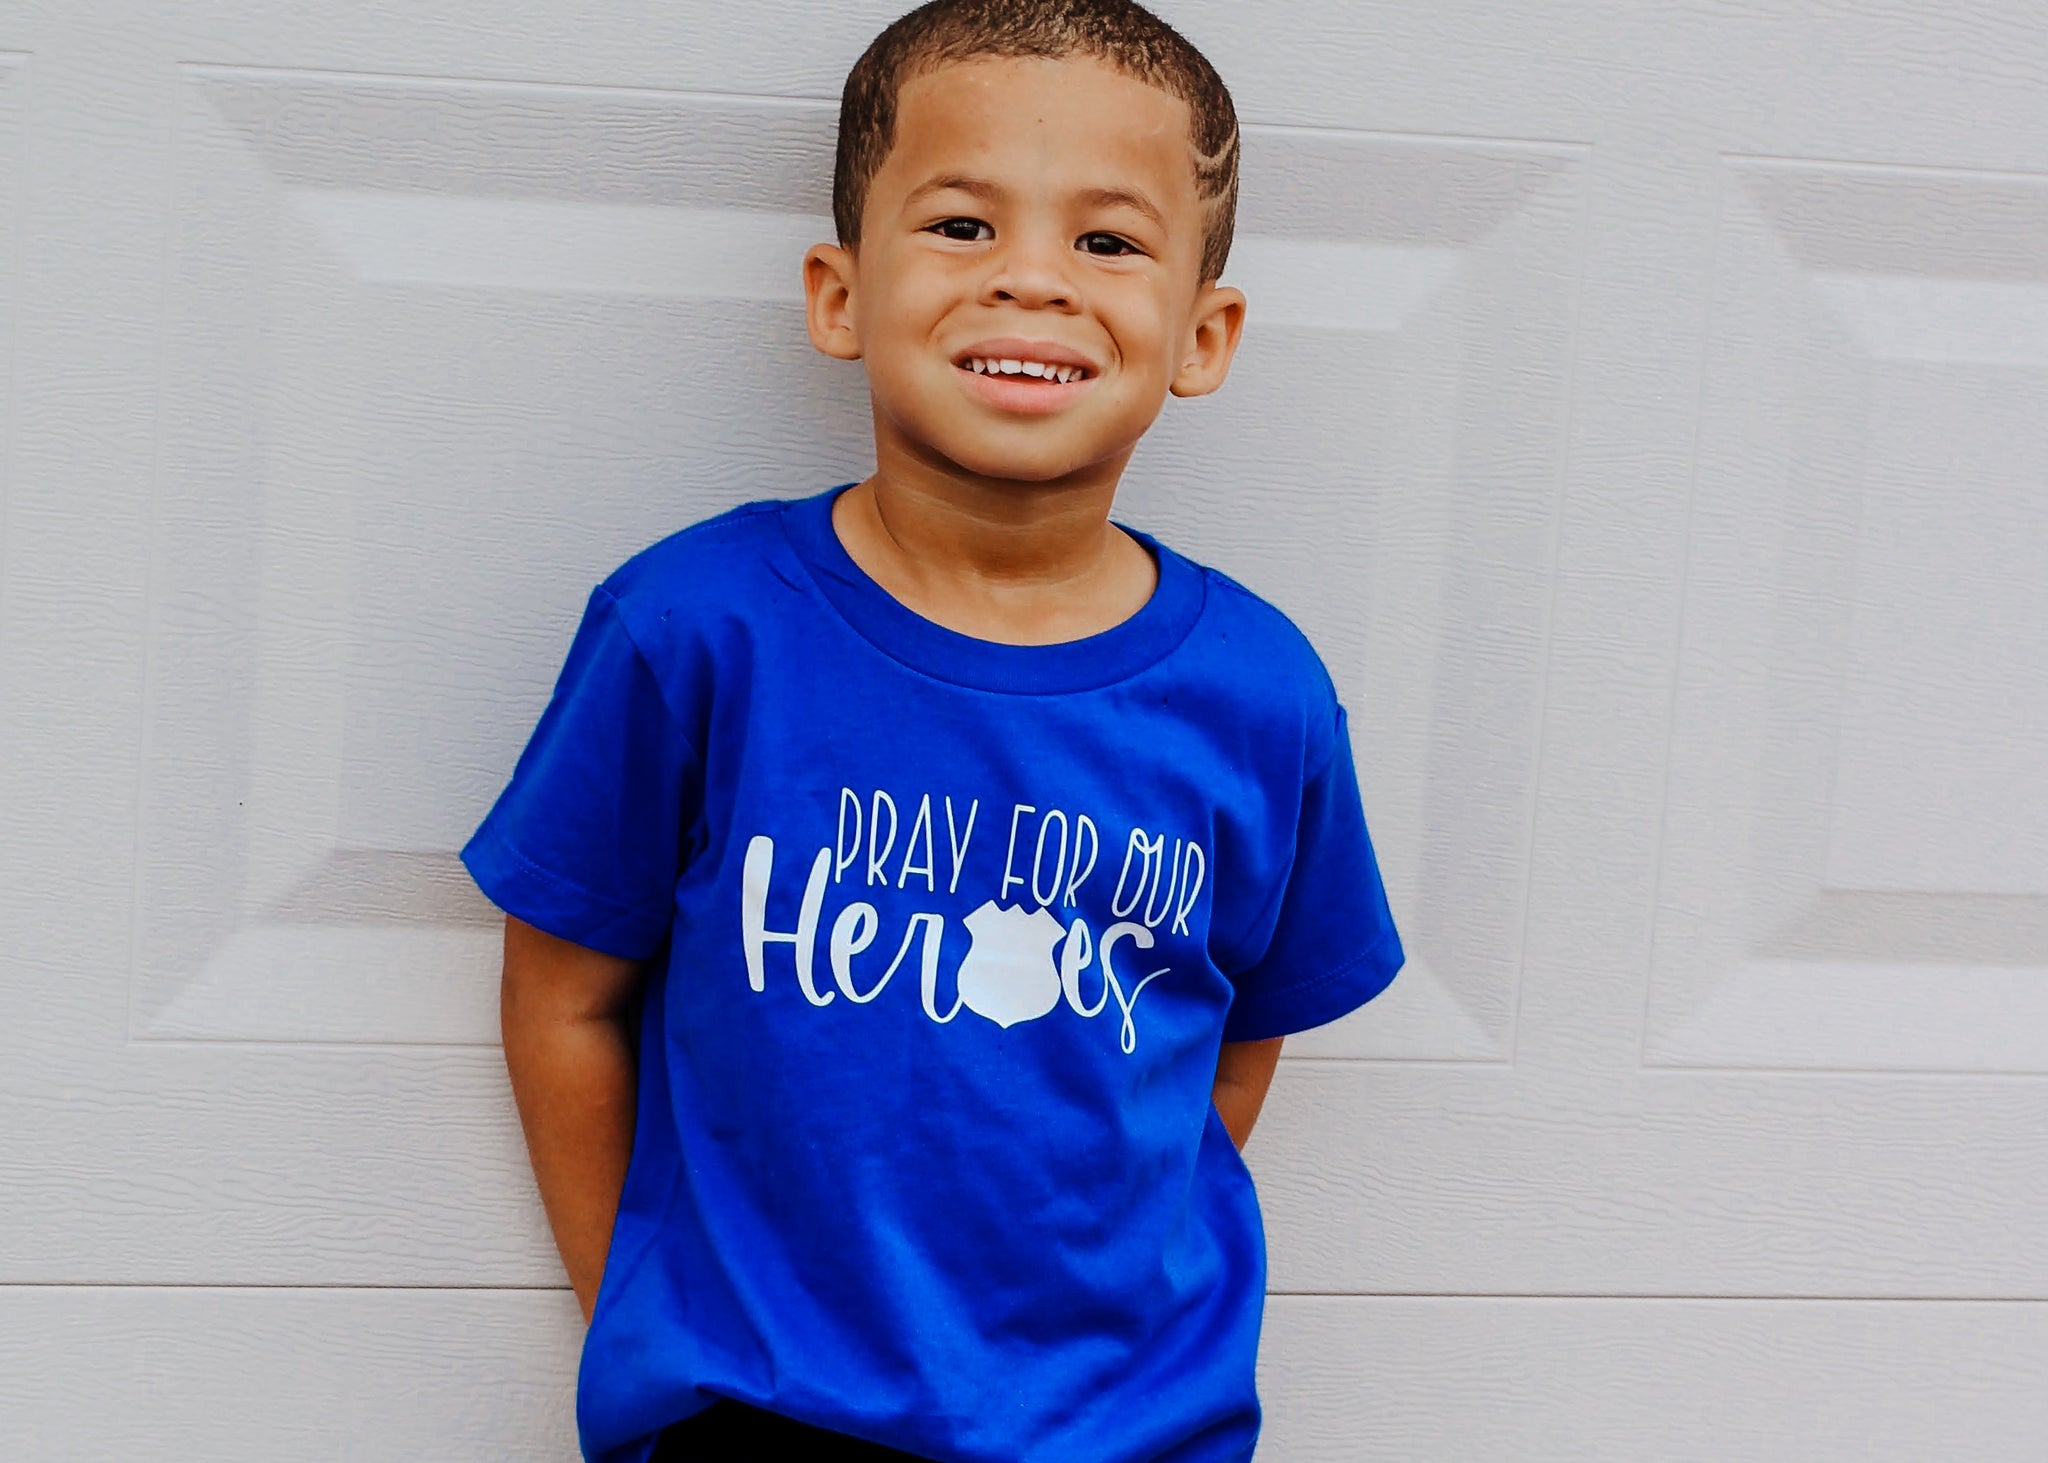 Pray For Our Heroes POLICE © - Toddler/Youth T-Shirt